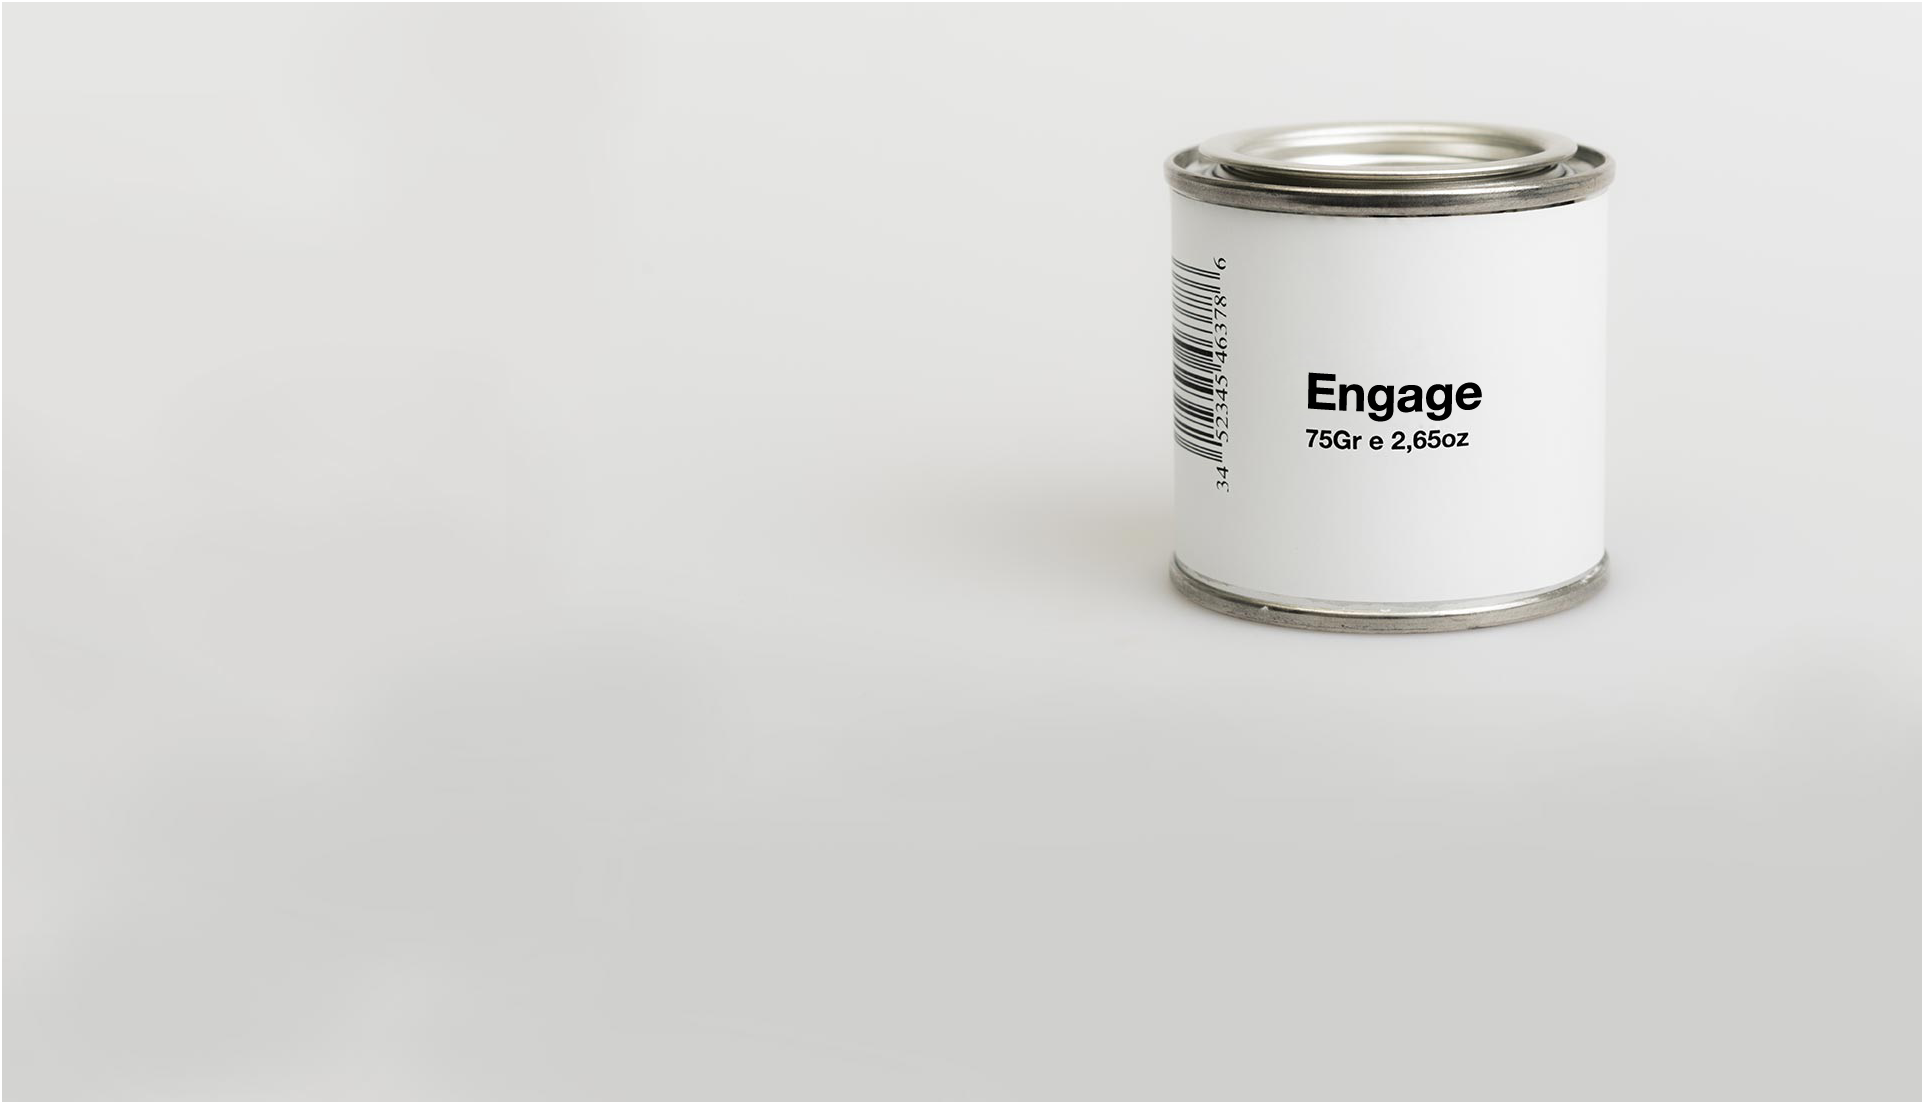 engage can